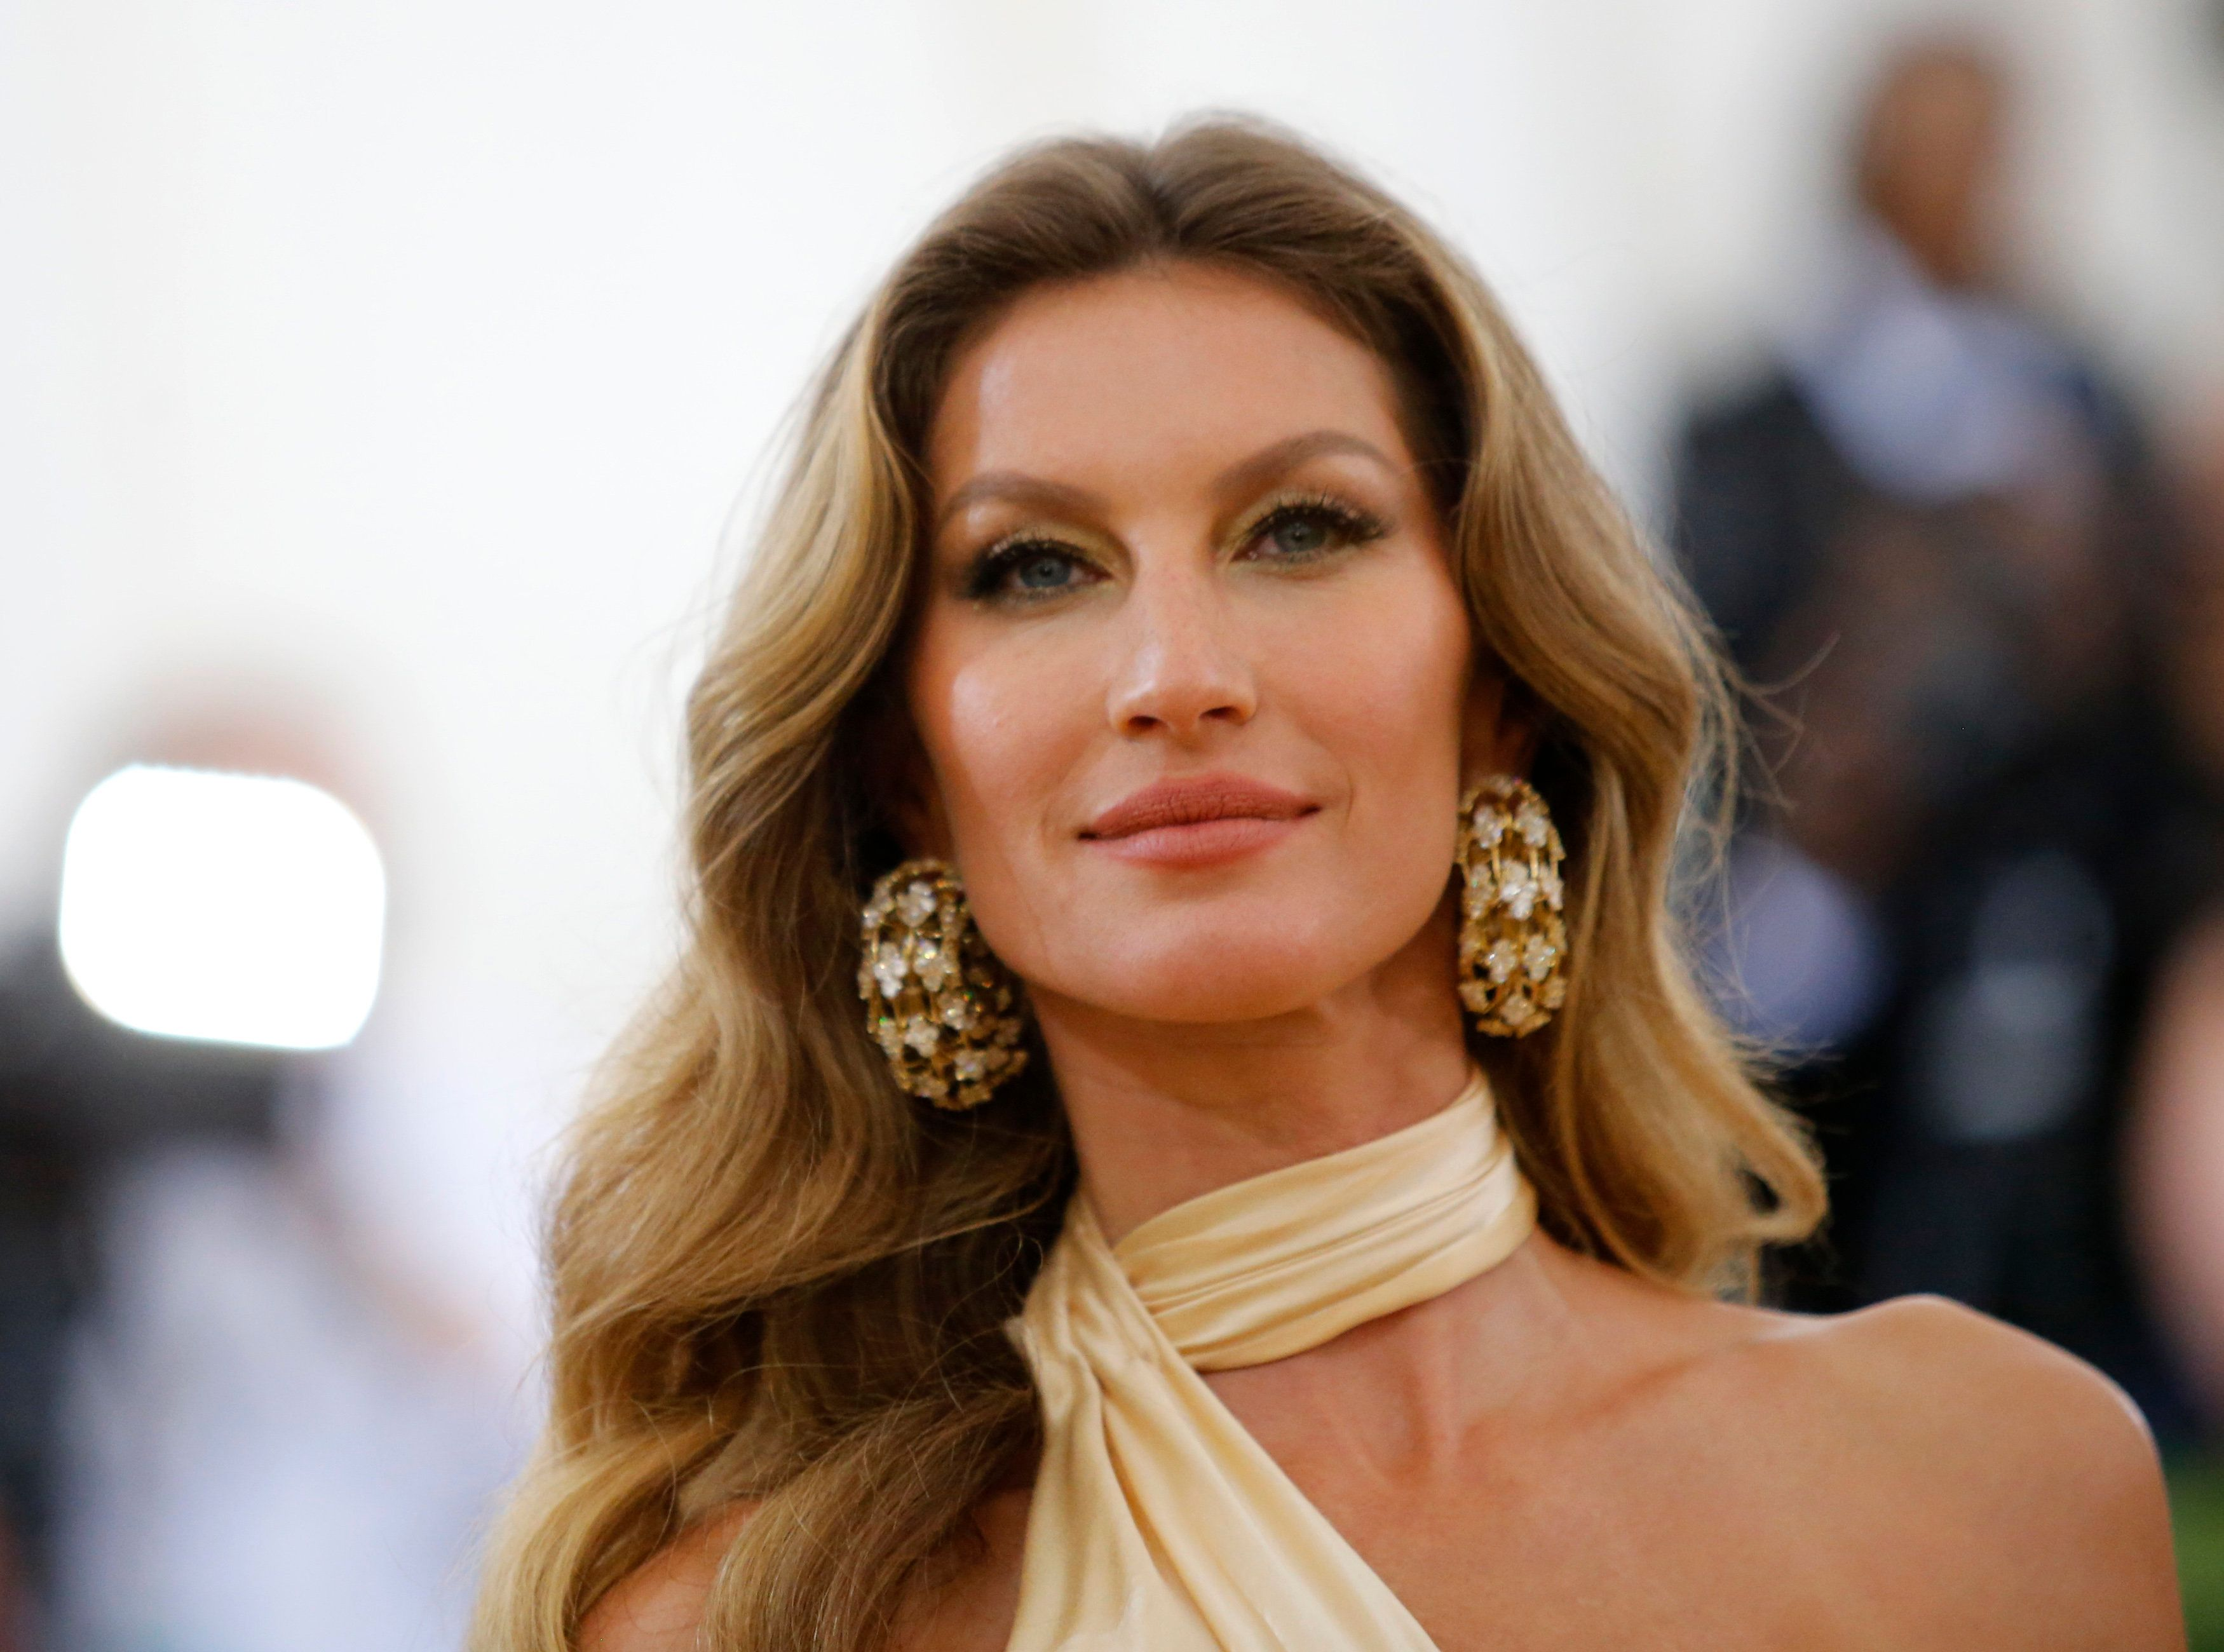 "Model Gisele Bundchen arrives at the Metropolitan Museum of Art Costume Institute Gala (Met Gala) to celebrate the opening of ""Heavenly Bodies: Fashion and the Catholic Imagination"" in the Manhattan borough of New York, U.S., May 7, 2018. REUTERS/Eduardo Munoz"